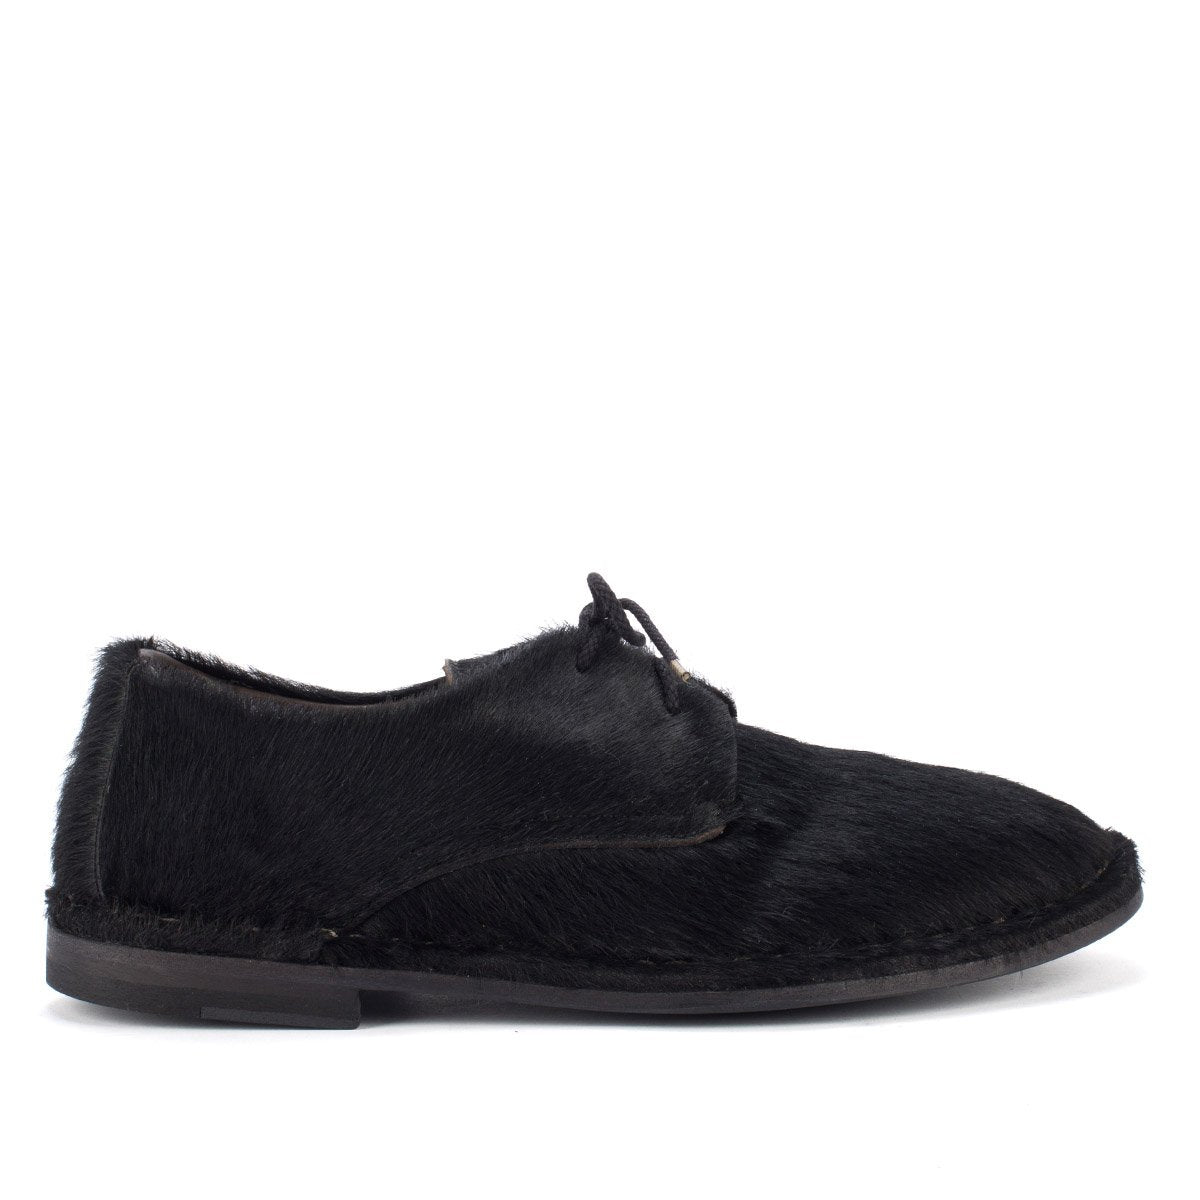 HAND 11 DERBY – Black Pony